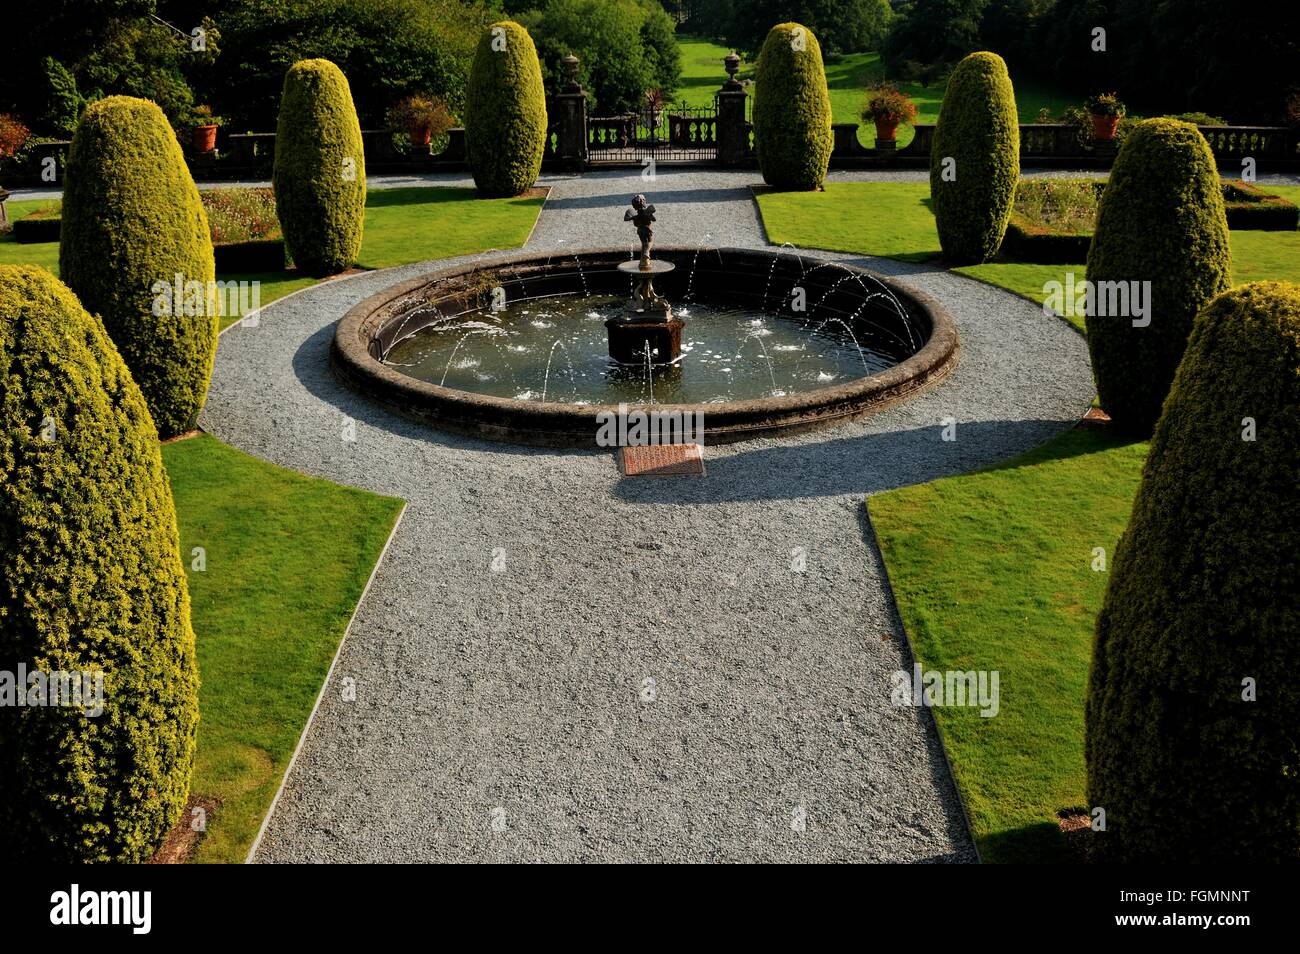 Rydal Hall, Rydal Village, Ambleside, Lake District National Park, Cumbria, England, UK. Formal Gardens, Fountain, - Stock Image